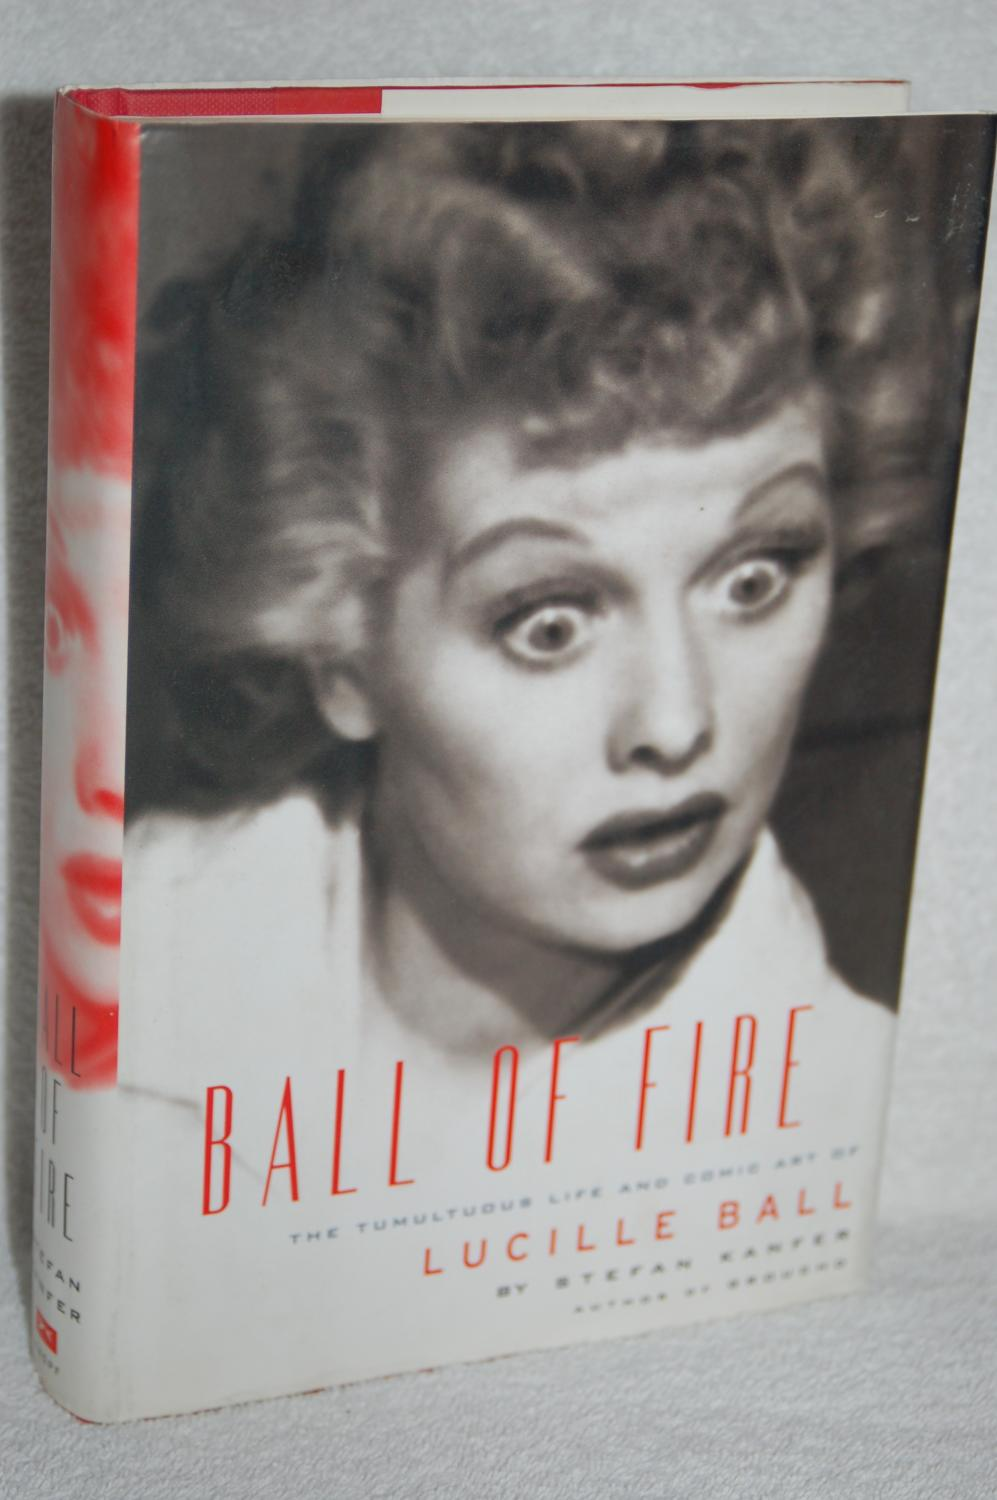 Ball of Fire; The Tumultuous Life and Comic Art of Lucille Ball - Stefan Kanfer